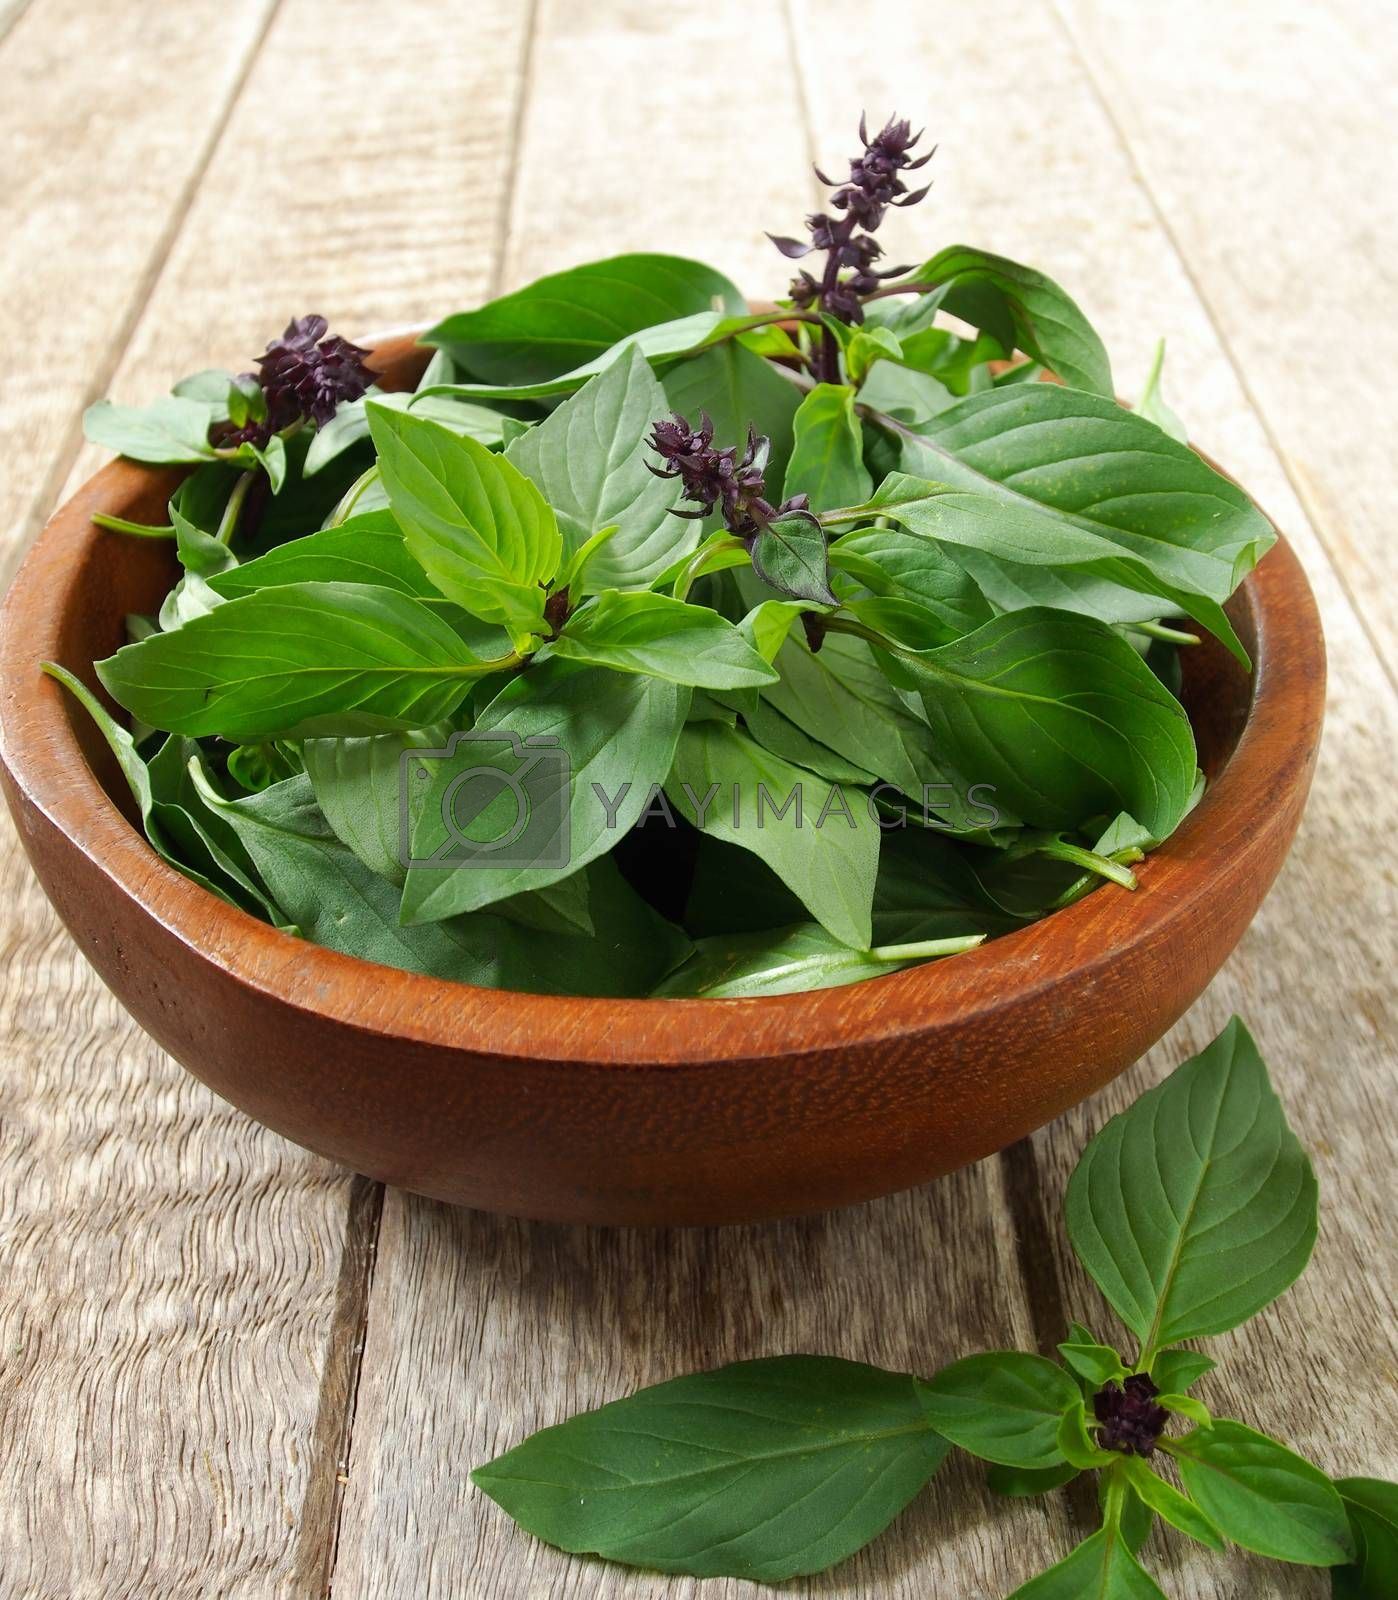 basil leaf in wooden bowl on table